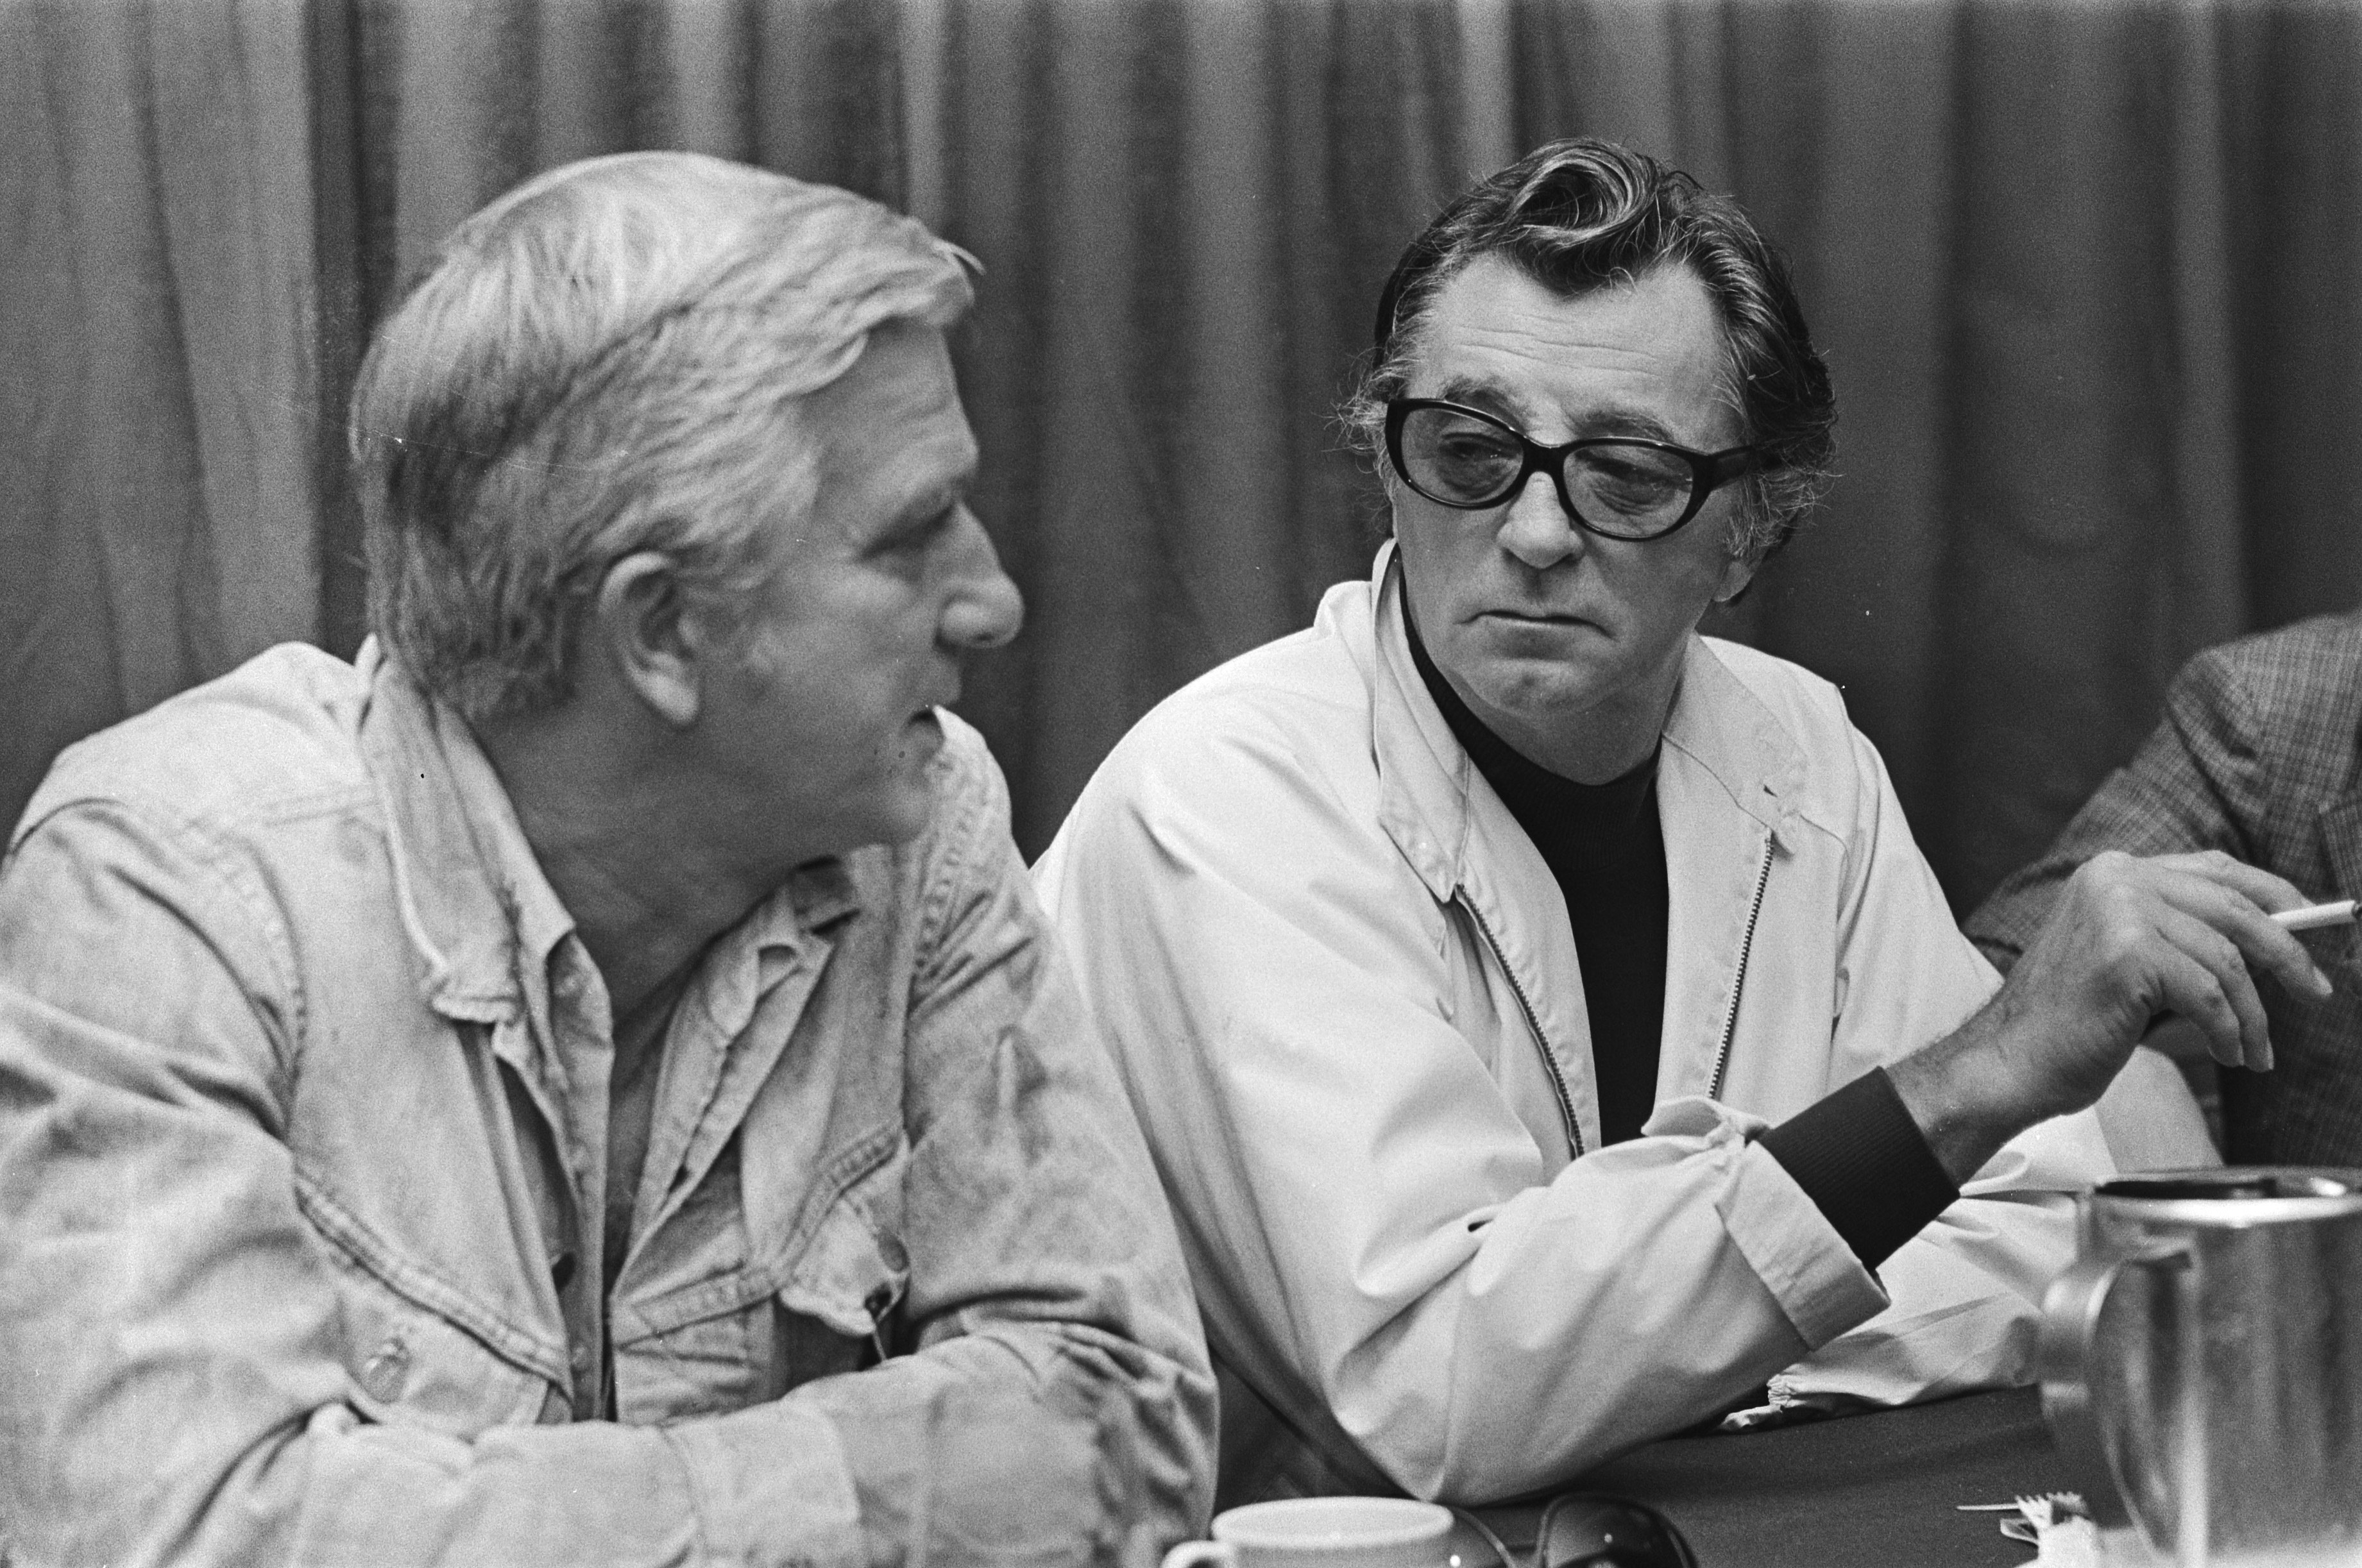 """Robert Mitchum (right) and Leslie Nielsen give press conference in Amsterdam Hilton regarding movie """"The Amsterdam Kill"""" on  October 1, 1976. 